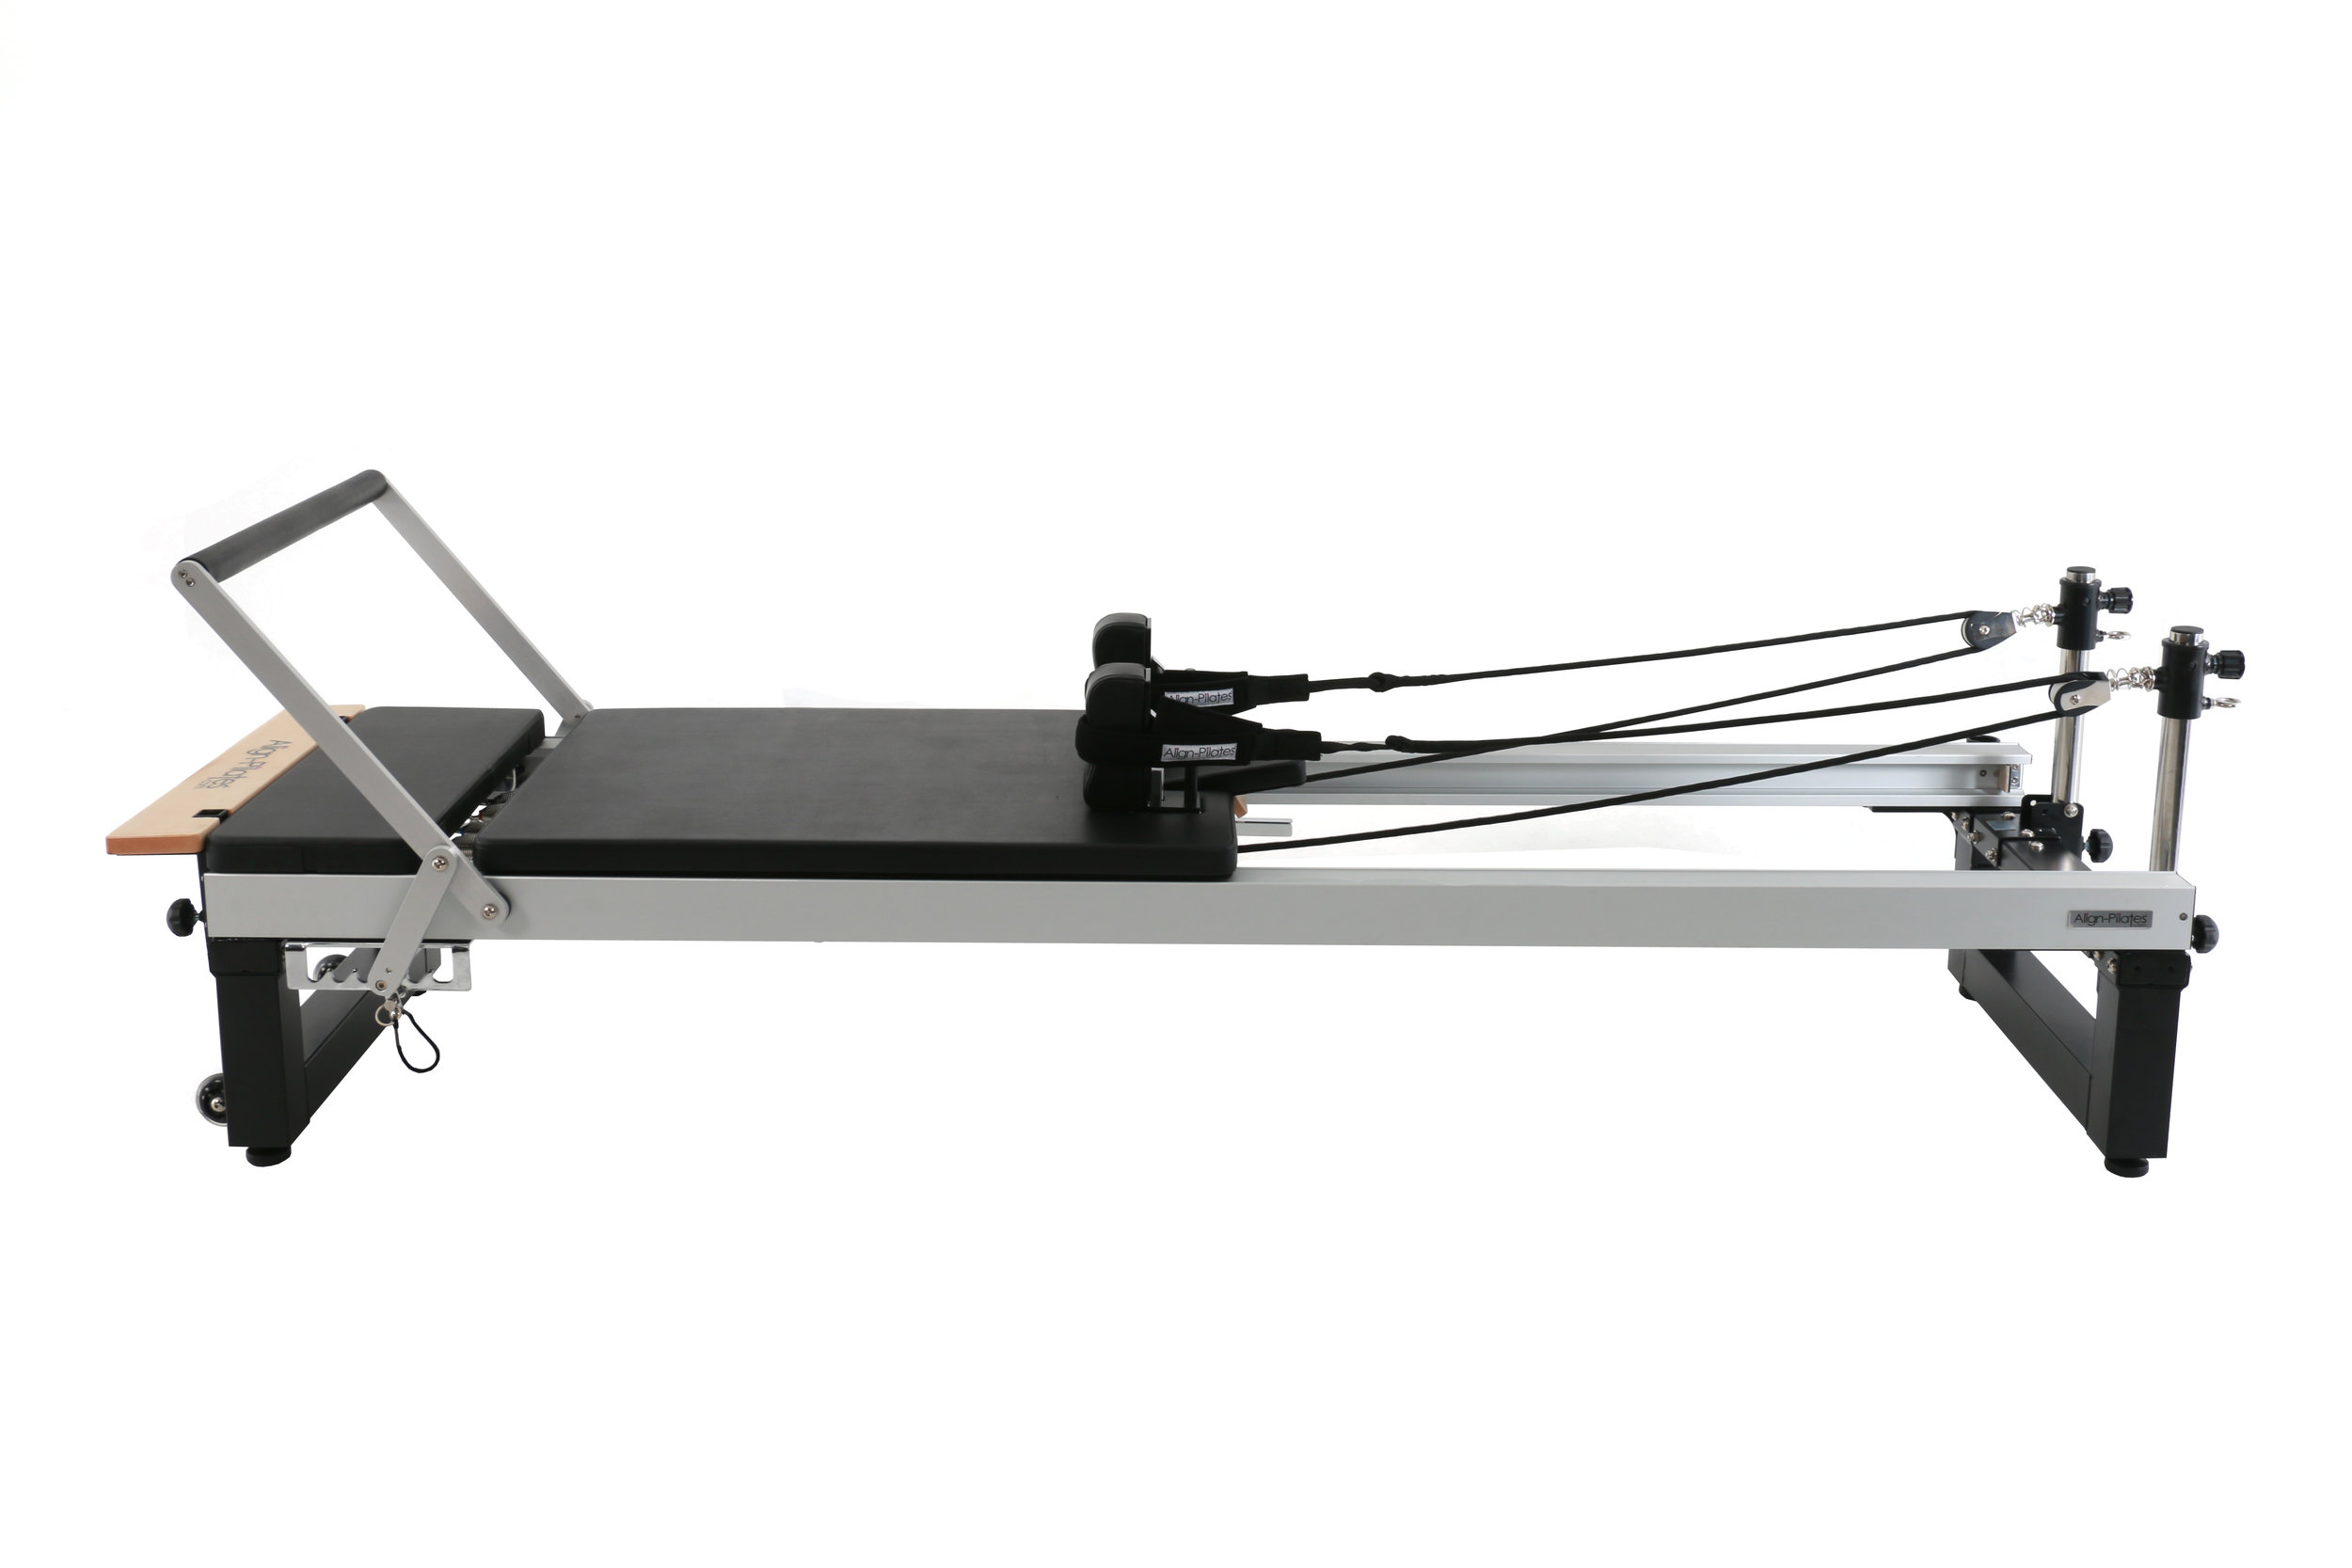 Align A2R2 studio pilates reformer with extension legs 42cm carriage height